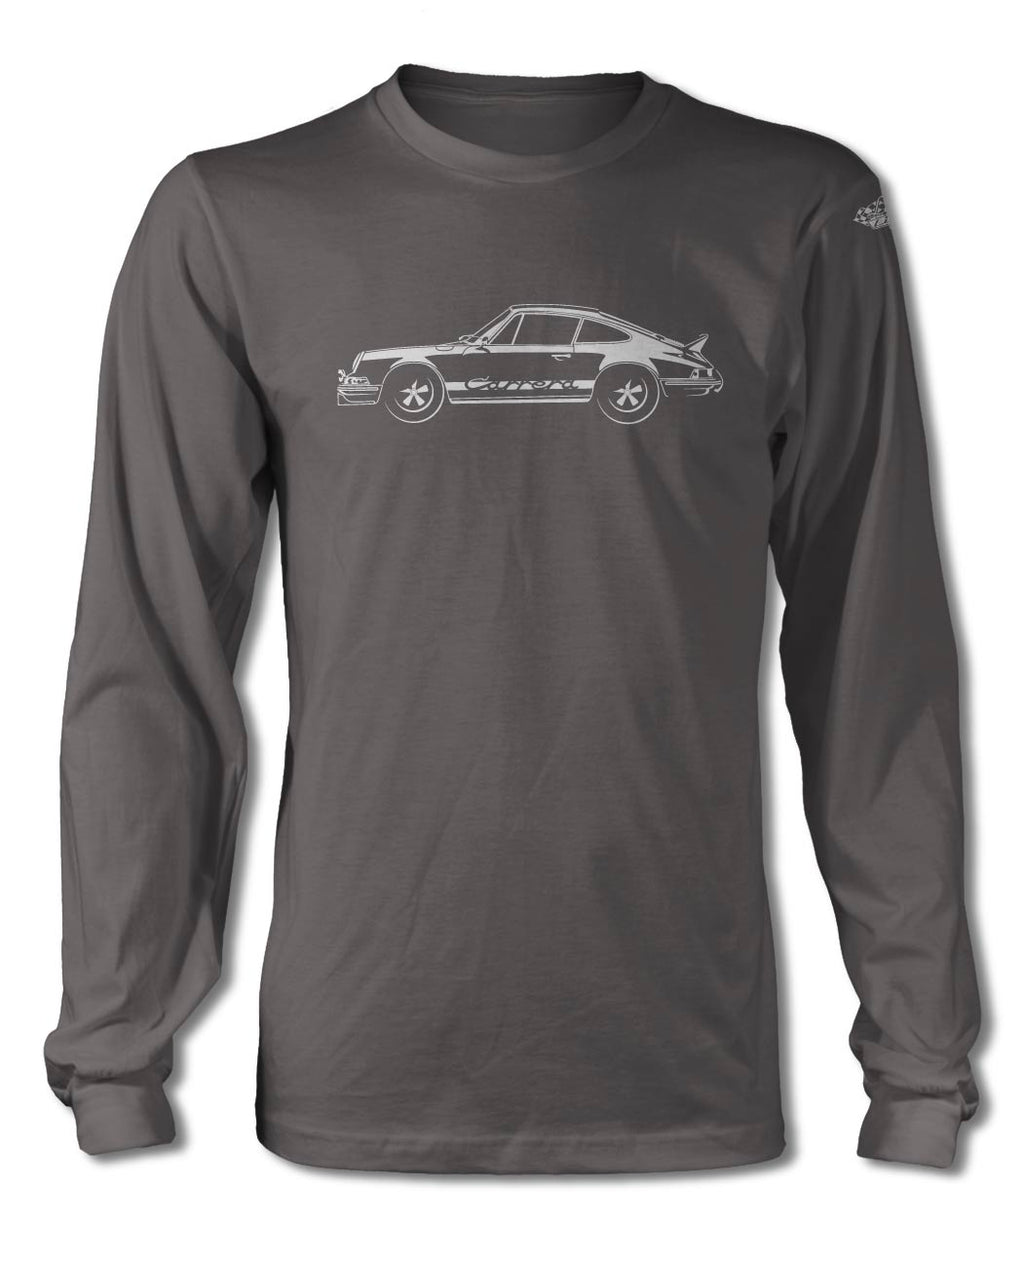 Porsche 911 Carrera RS T-Shirt - Long Sleeves - Side View